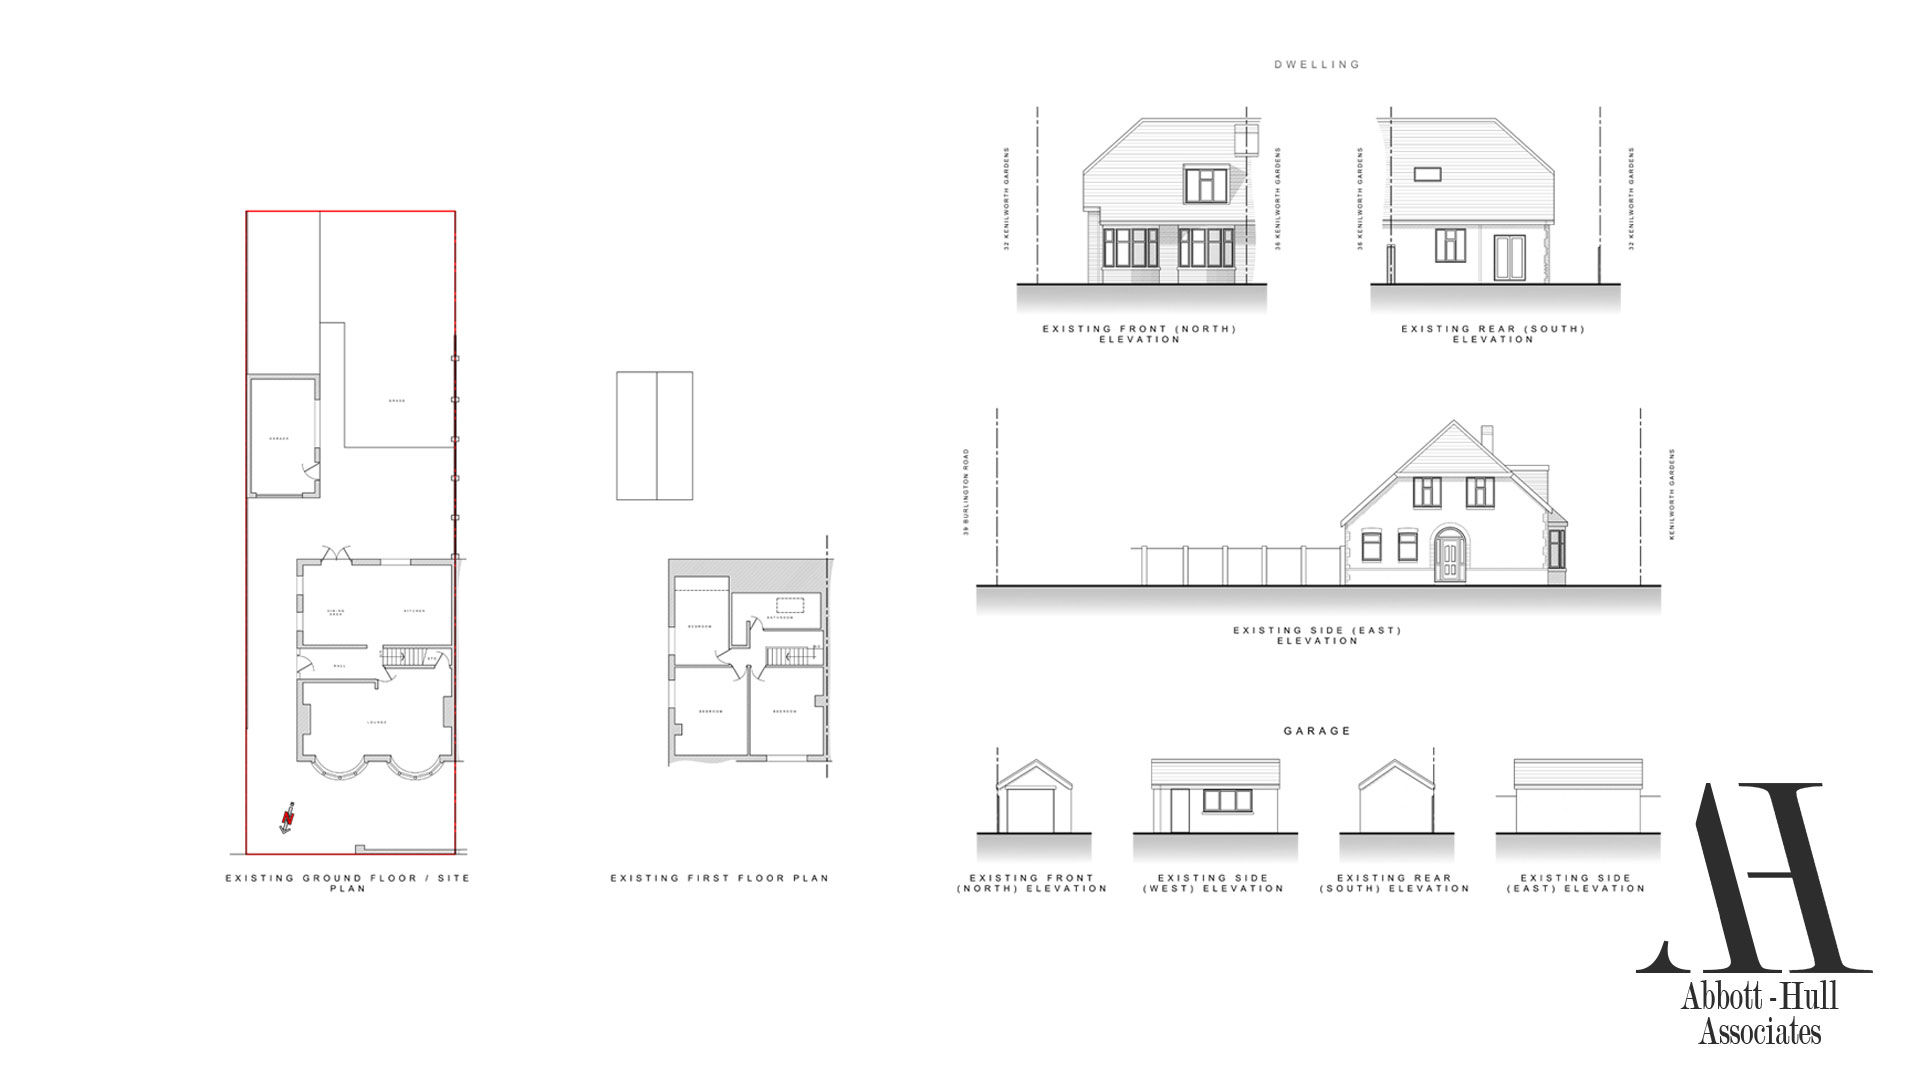 Kenilworth Gardens, Blackpool - Existing Plans and Elevations